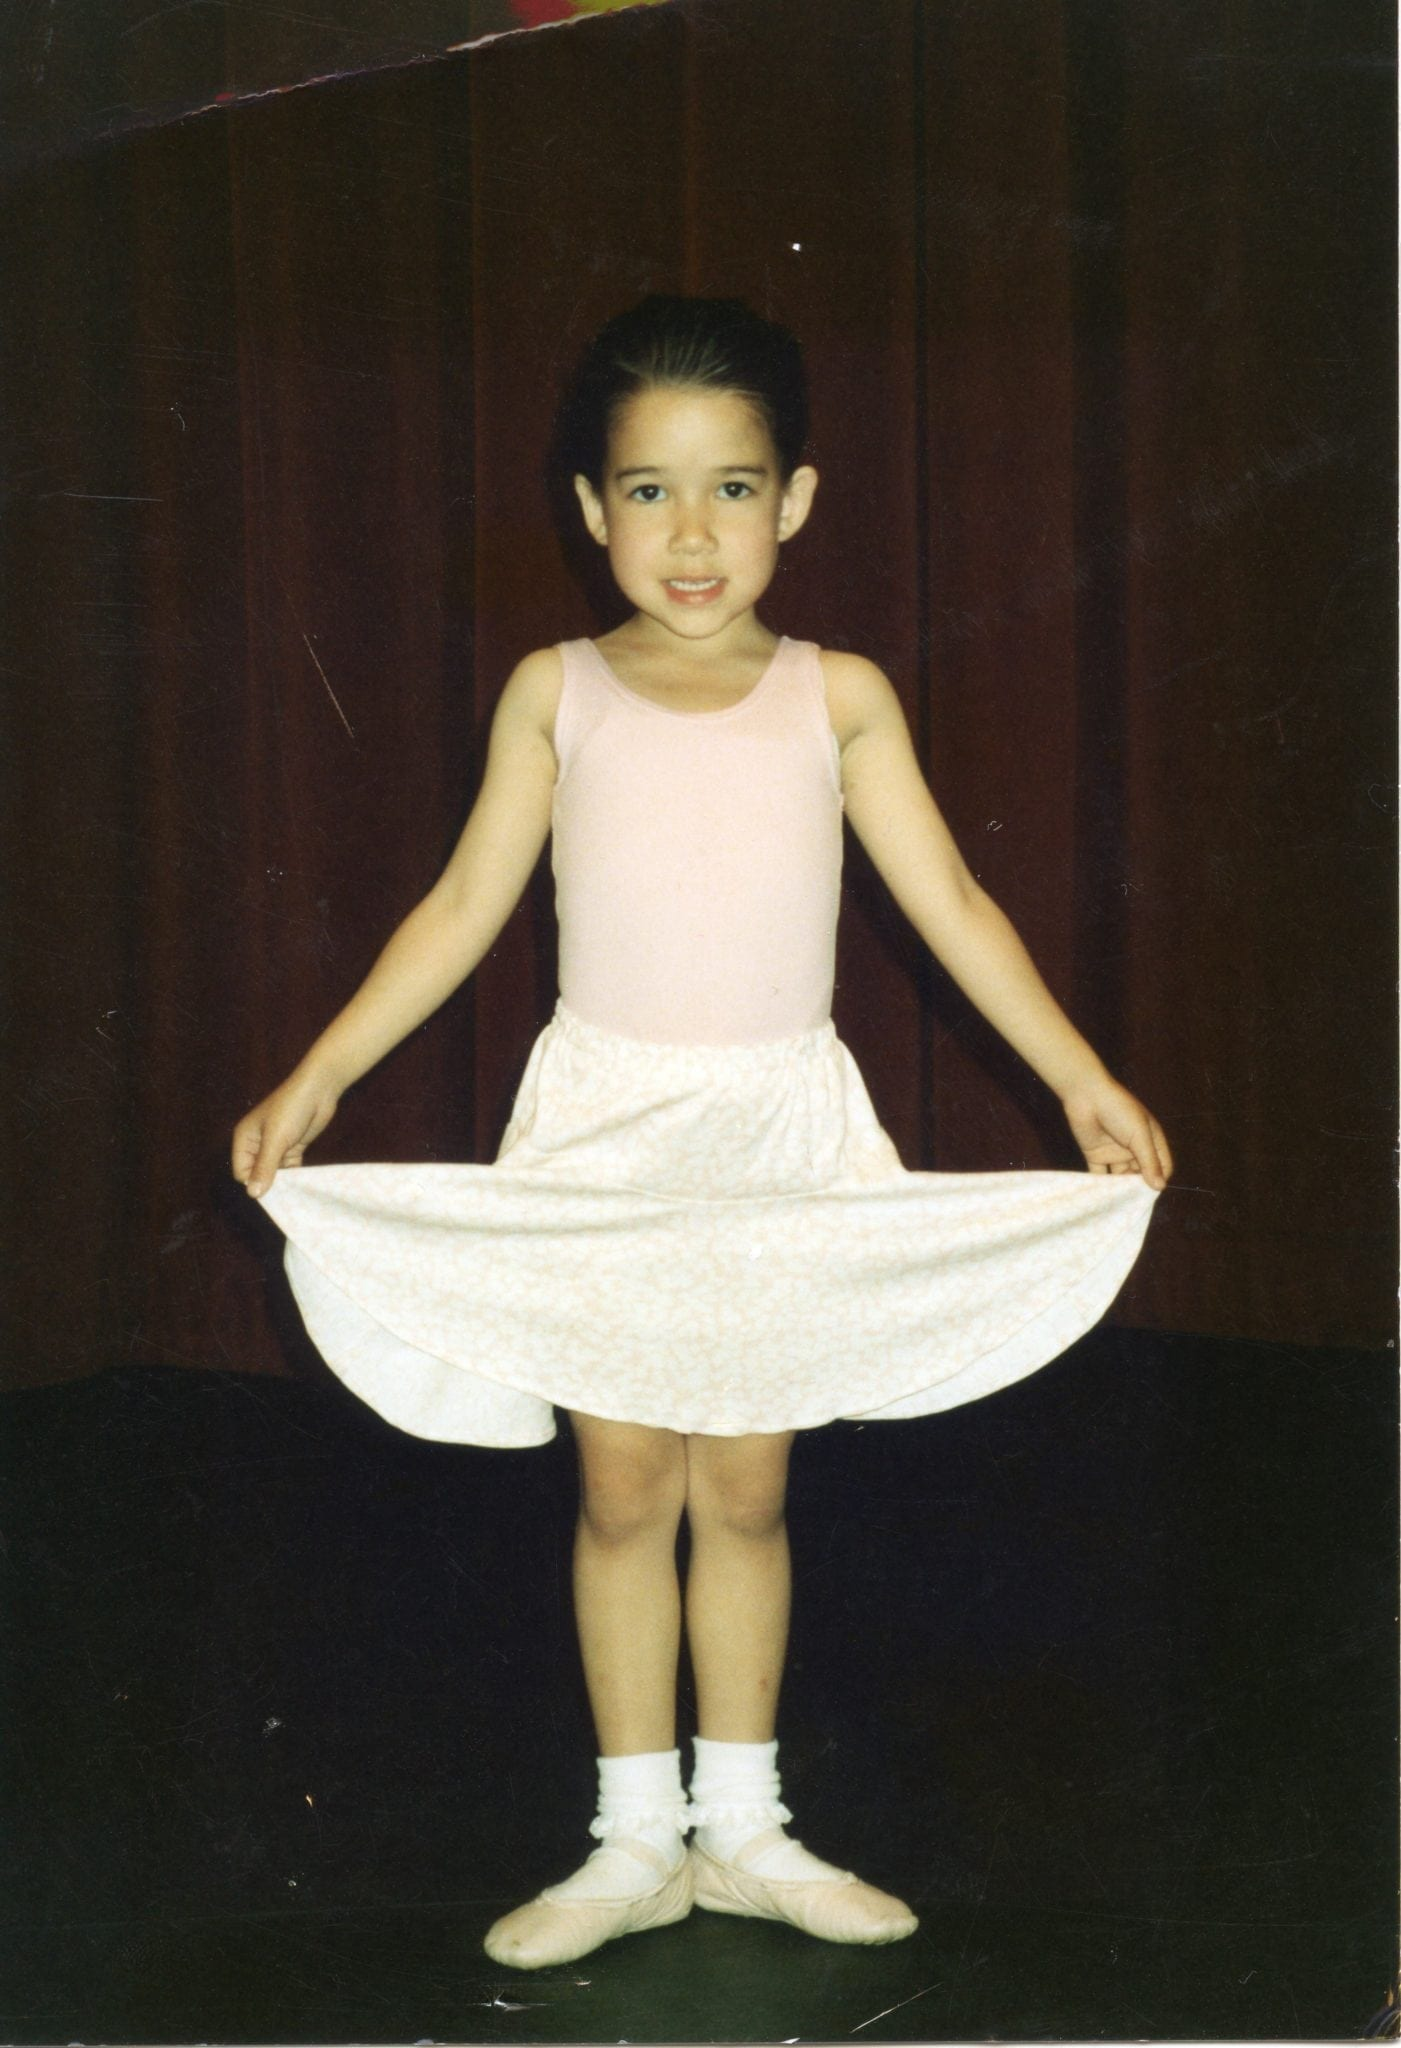 Van Buskirk in her first ballet recital at age four. (Photo courtesy Rachel Van Buskirk)